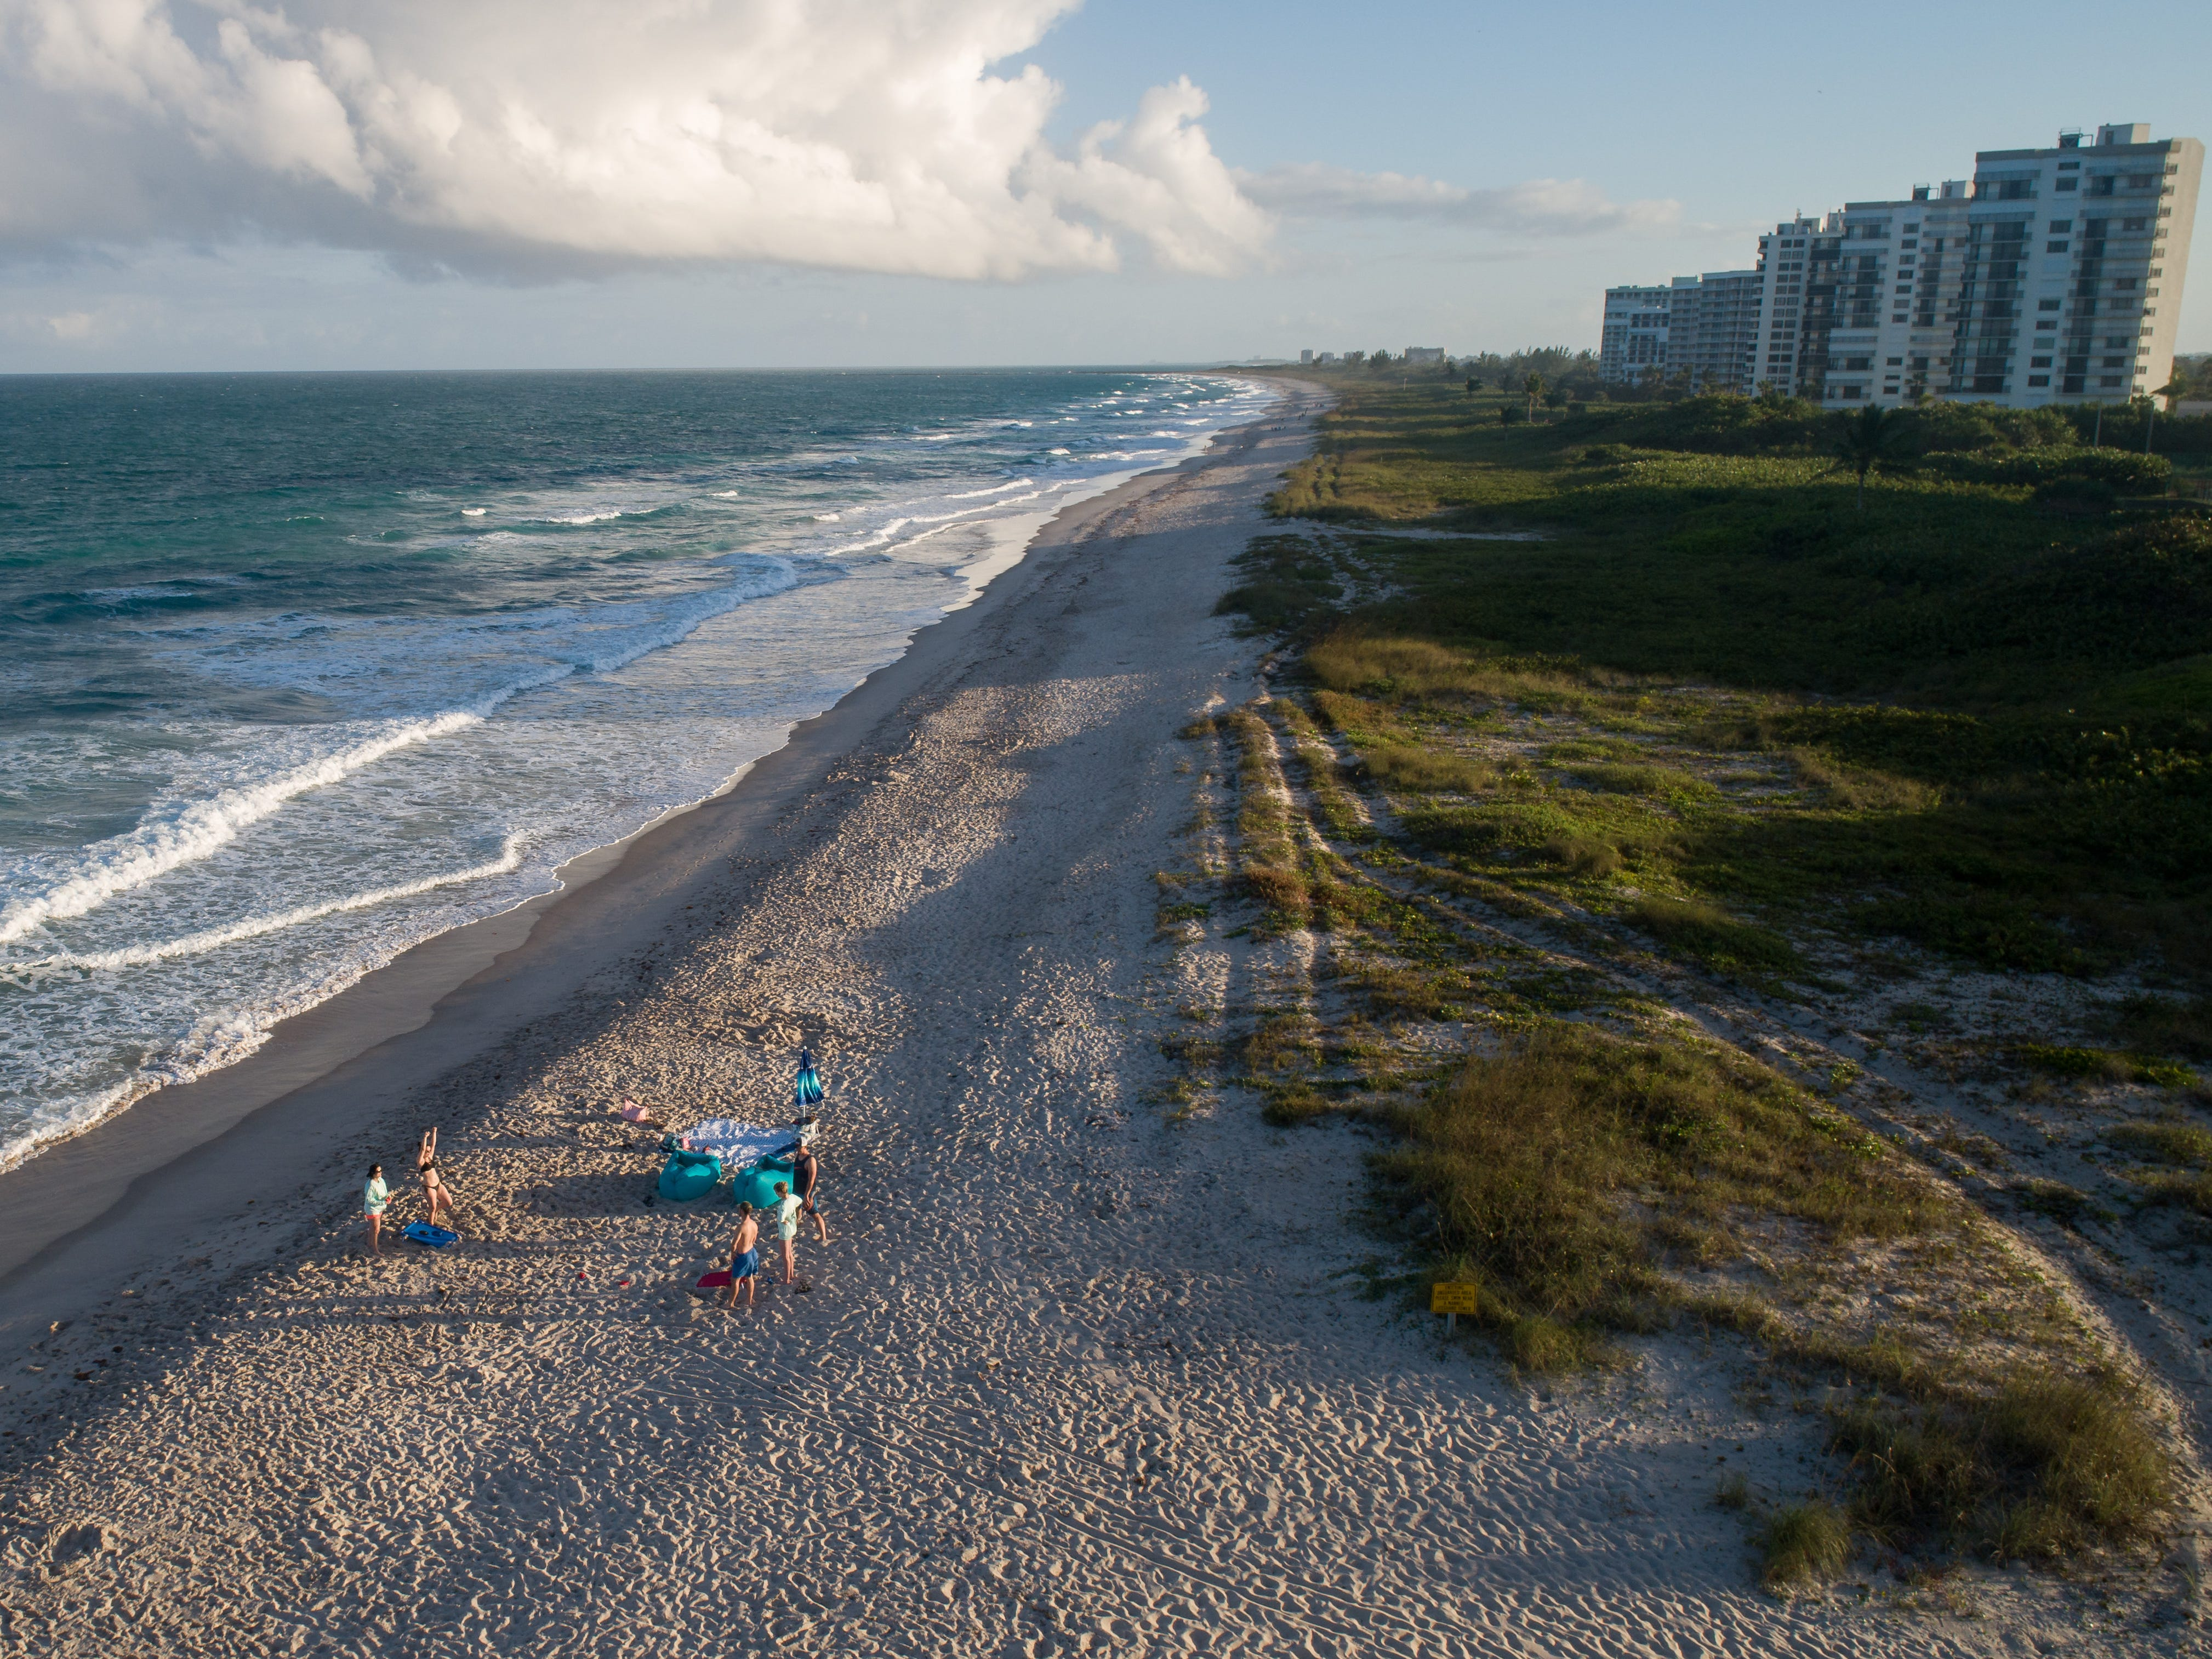 Few people are seen out at Pepper Park Beachside shortly before the sun sets on the last day of the year Monday, Dec. 31, 2018, in St. Lucie County. Beach access was closed earlier in the year due to red tide.